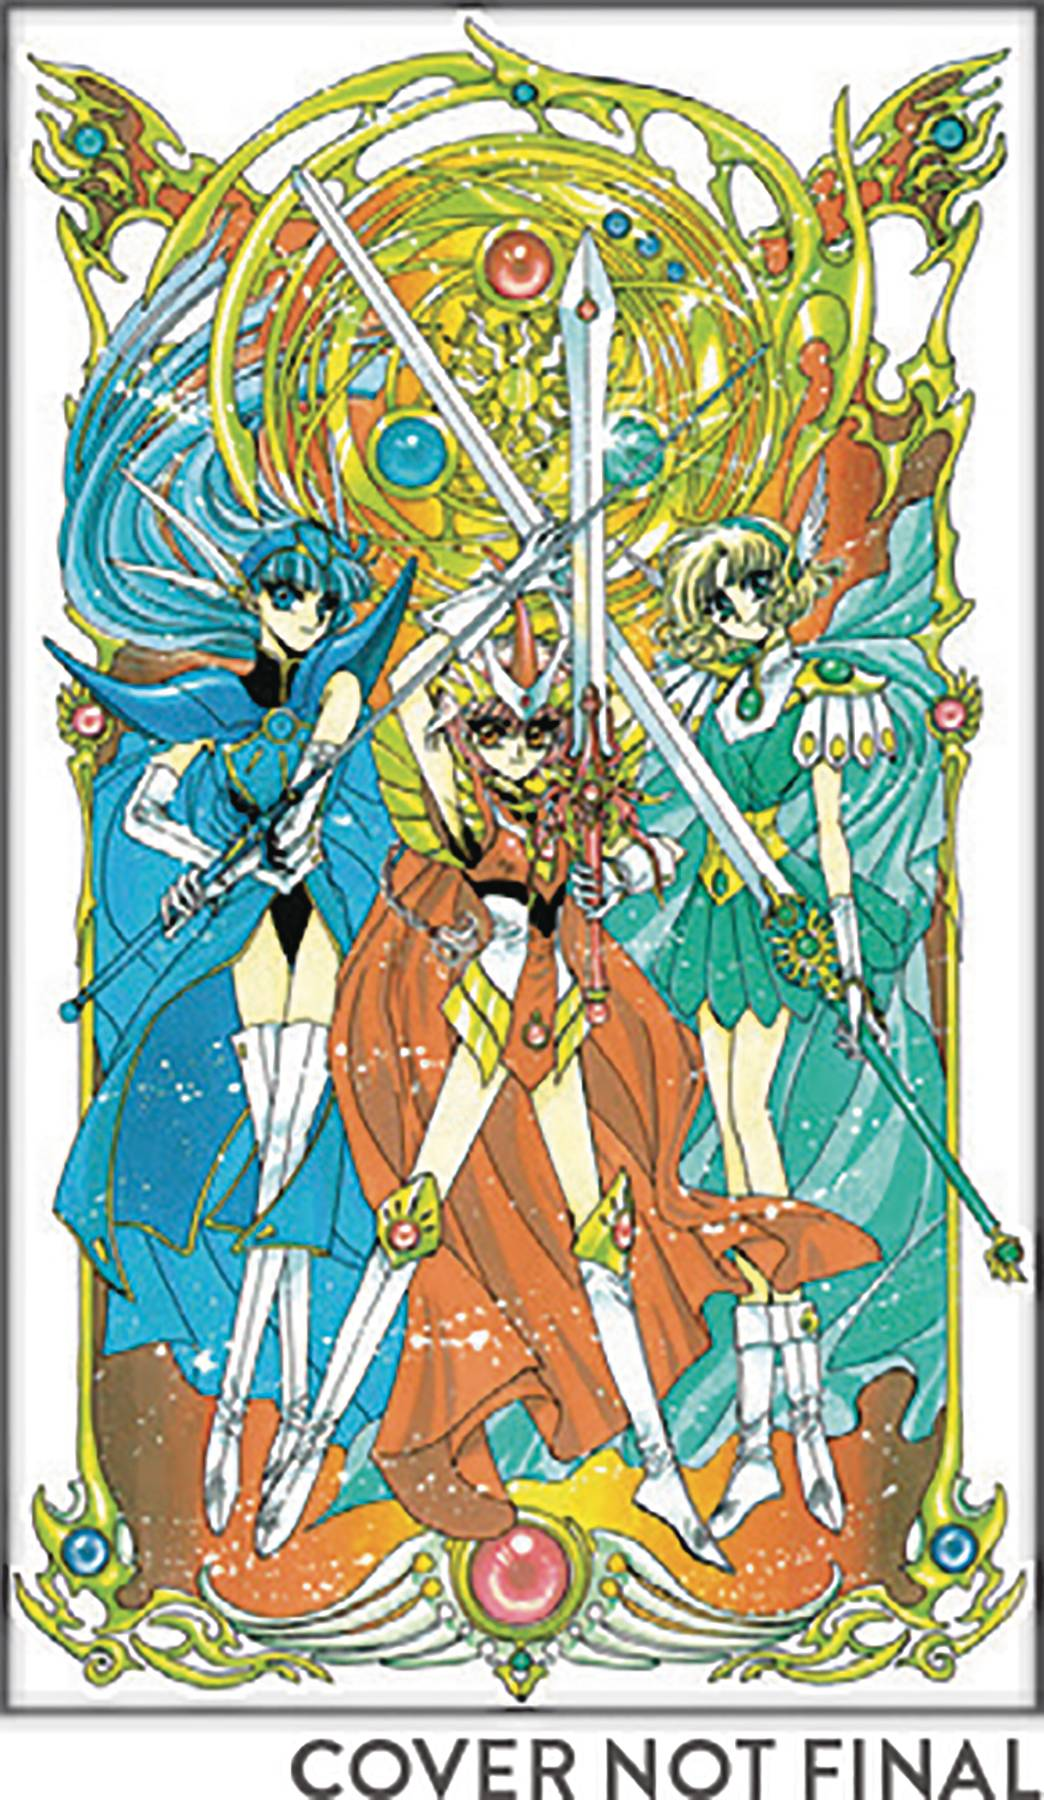 MAGIC KNIGHT RAYEARTH 25TH ANN BOX SET 02